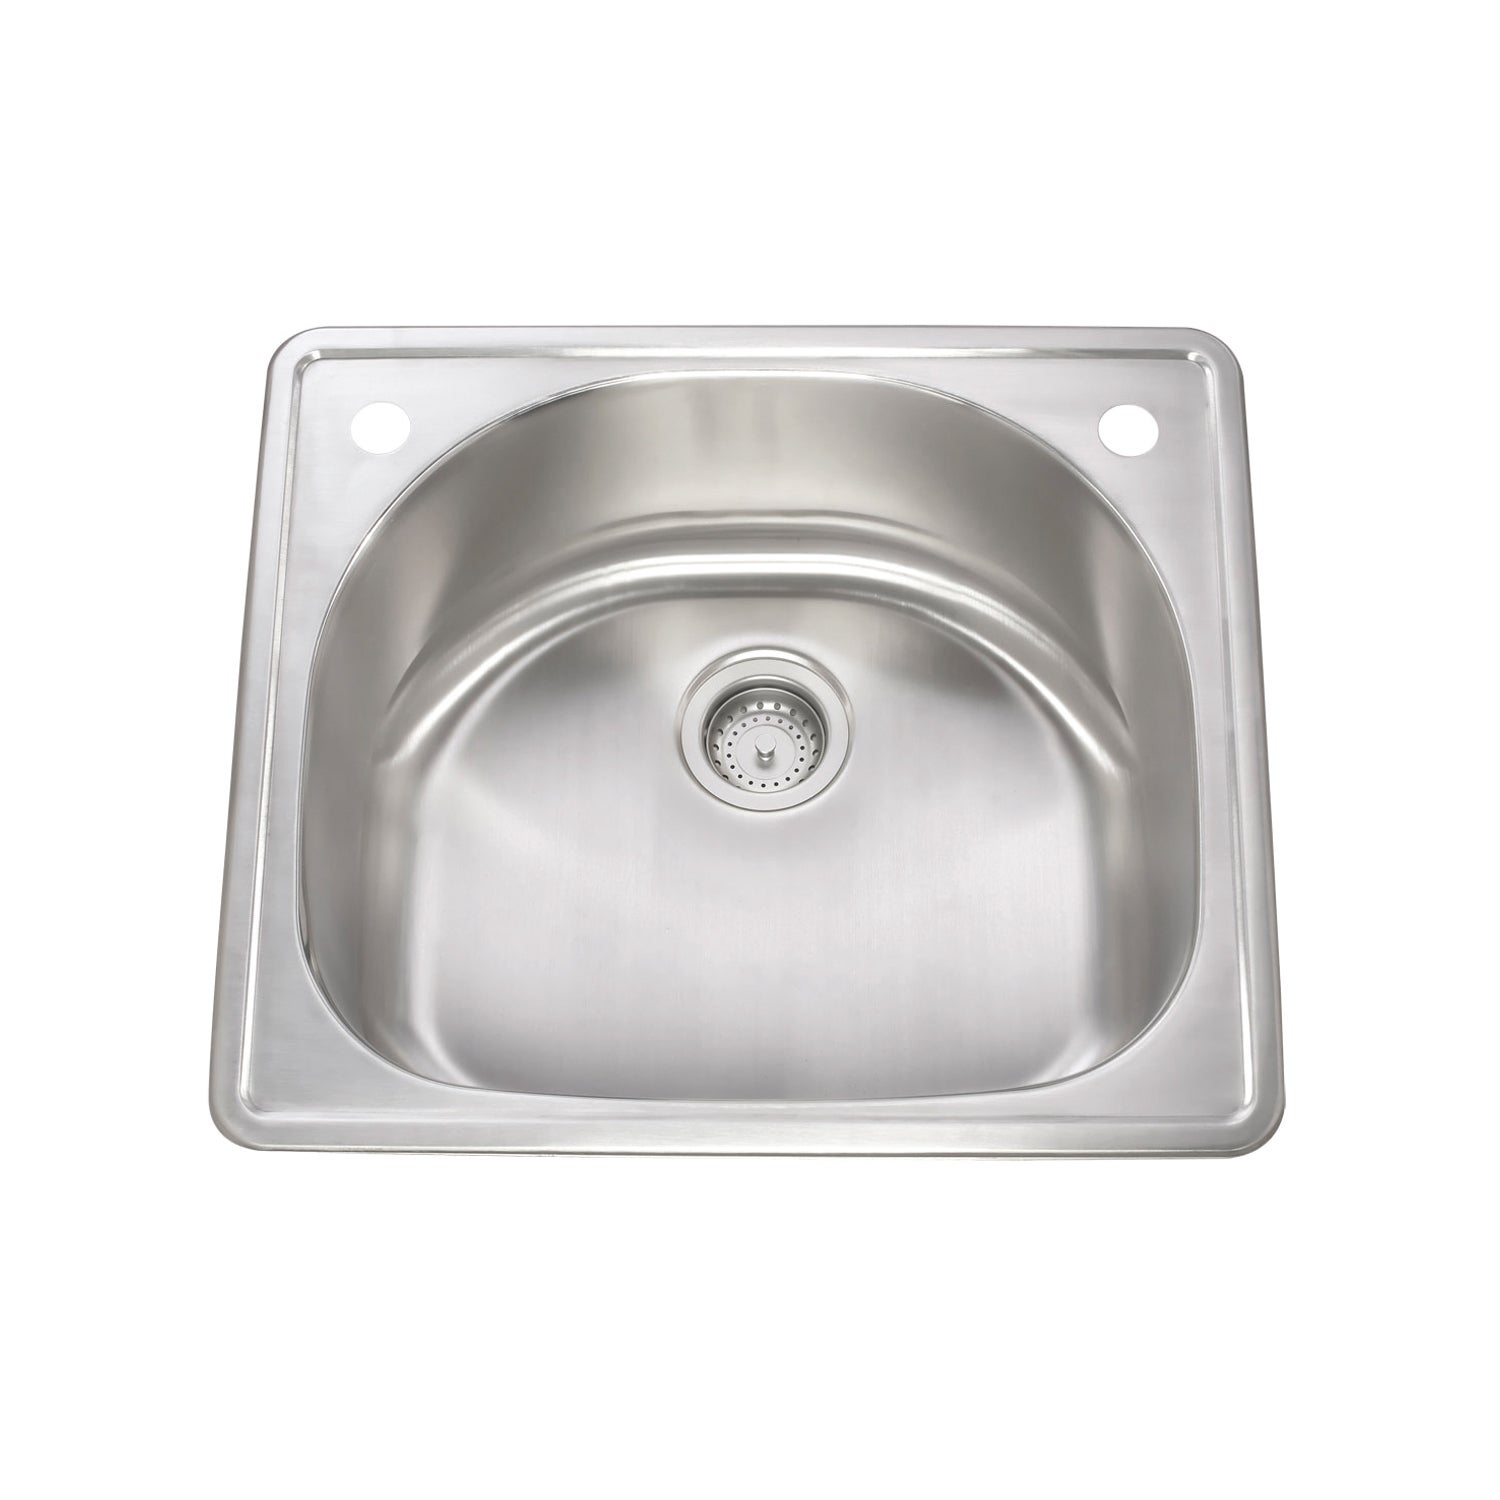 KBF & MORE Stainless Steel Drop-in Quarter-round Kitchen Sink